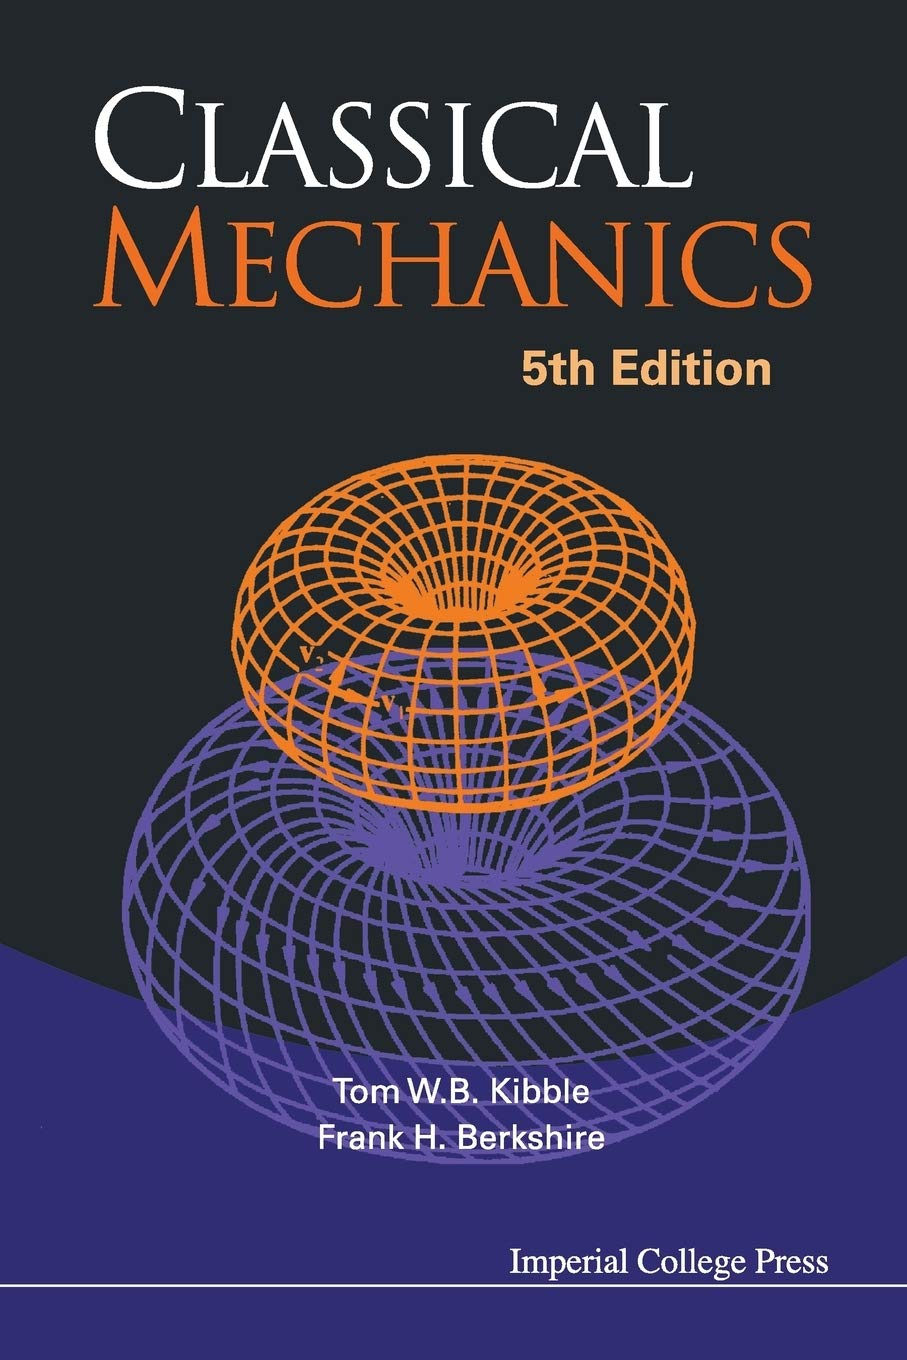 Download Classical Mechanics (5th Edition) 